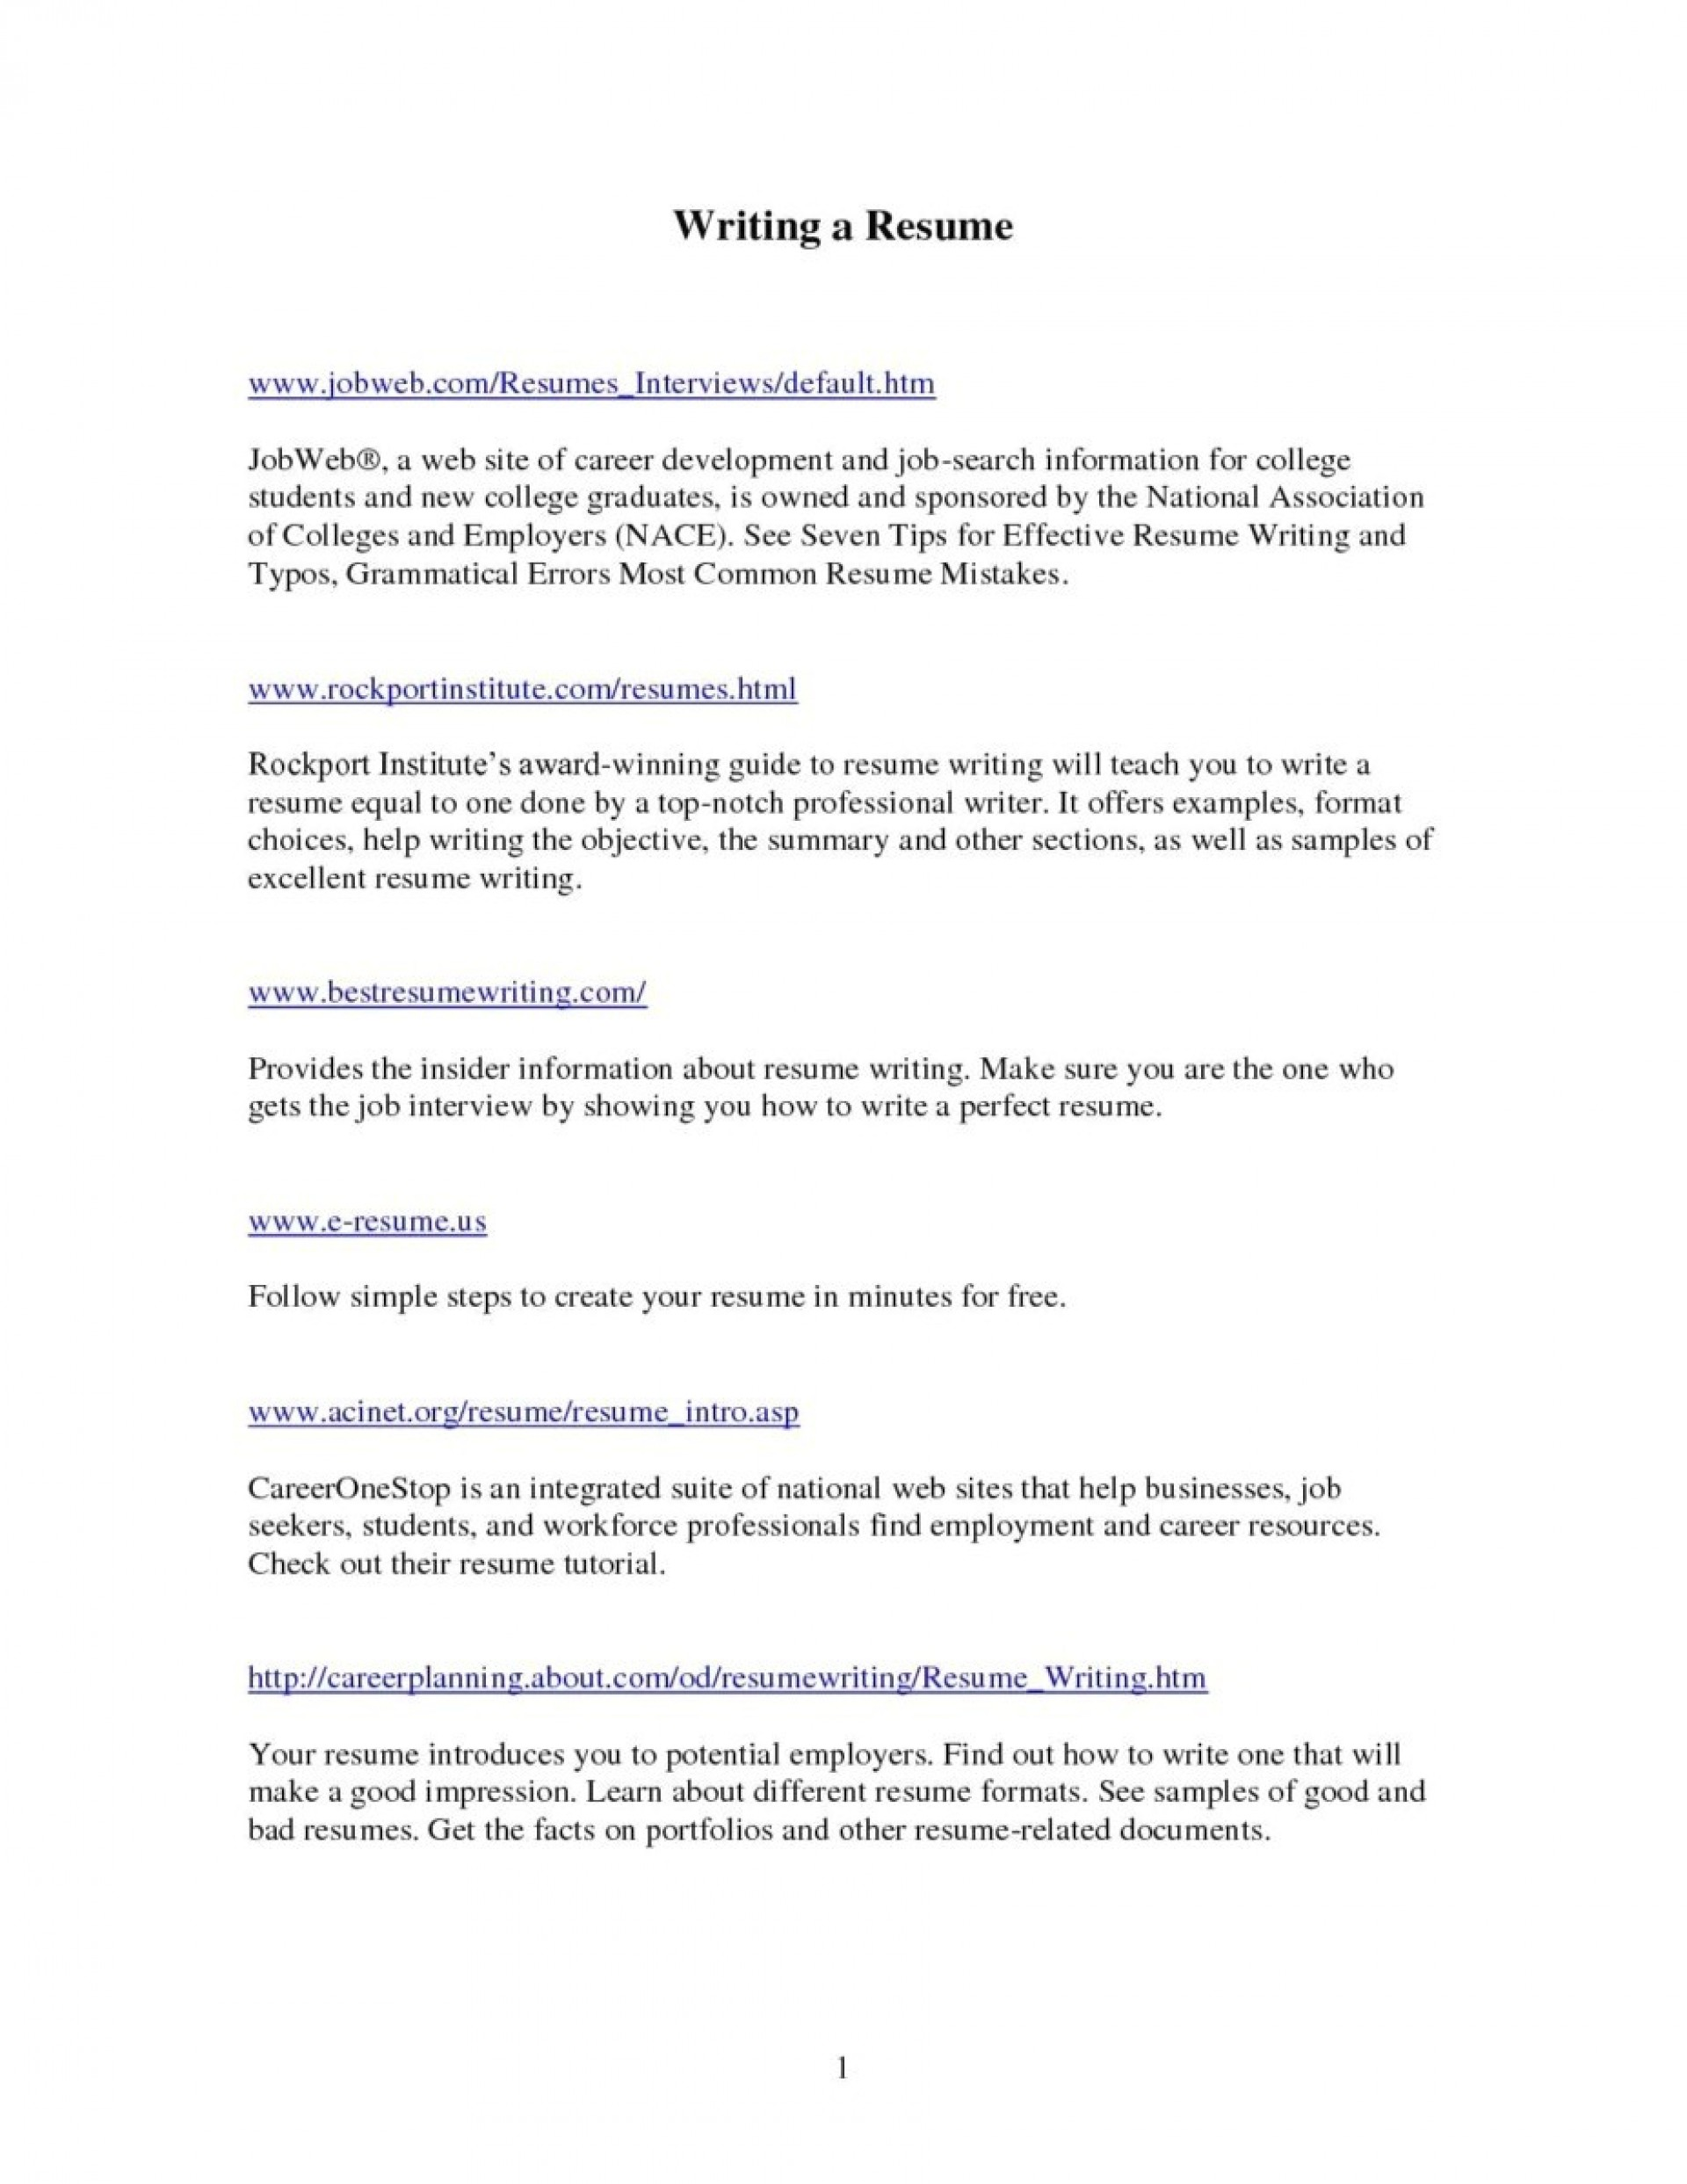 011 Resume Writing Service Reviews Format Best Writers Inspirational Help Professional Of Free Services Research Paper How To Write Apa Wonderful A Outline Style 1920